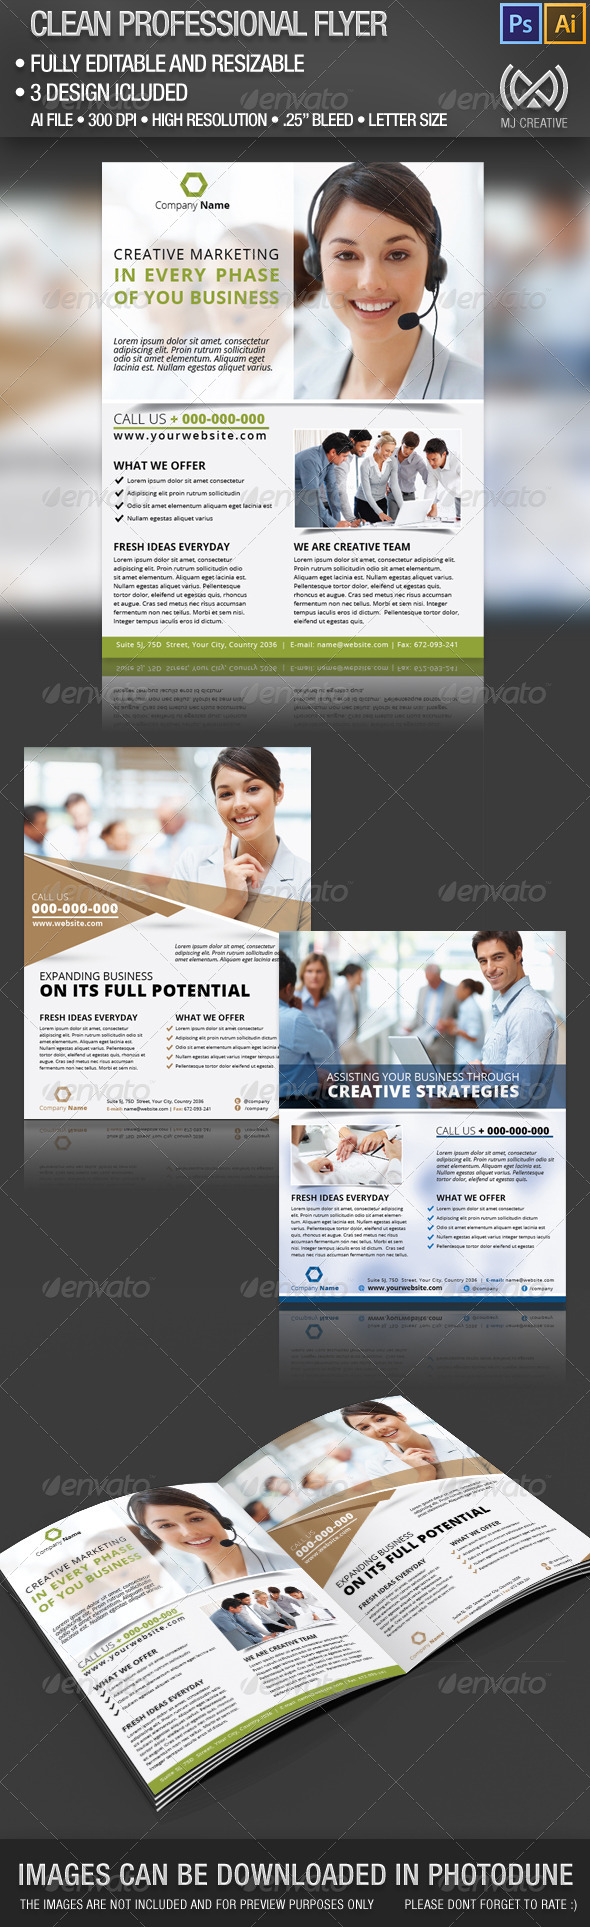 Clean Professional Flyer Set - Corporate Flyers